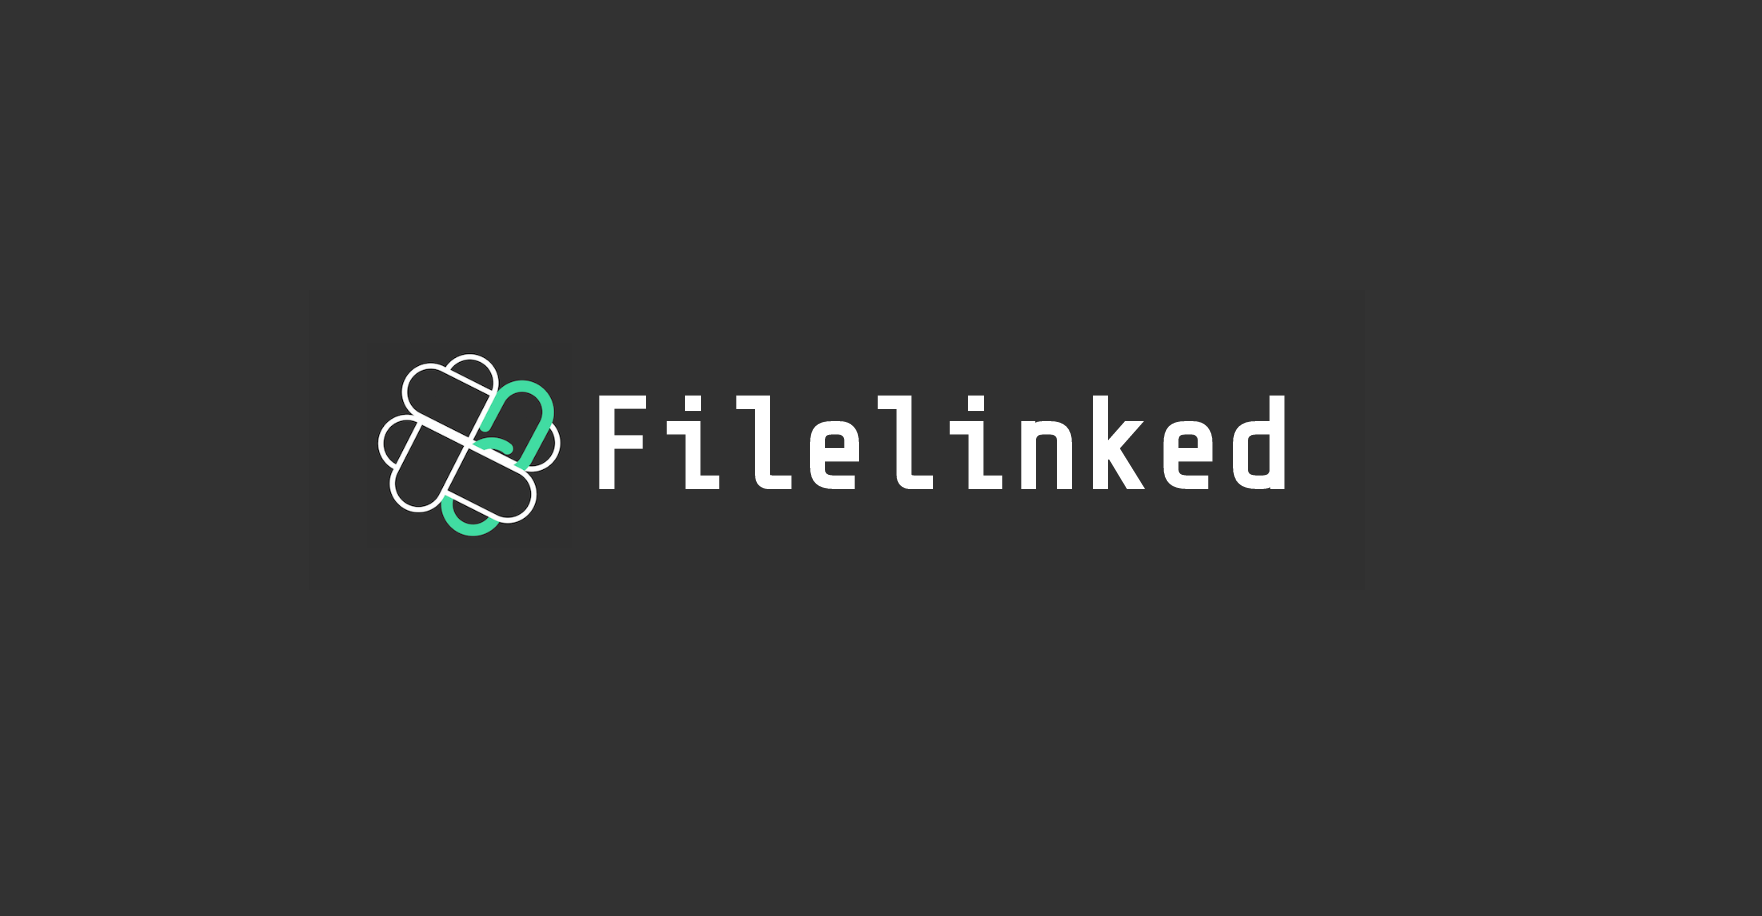 How To Install FileLinked On Nvidia Shield